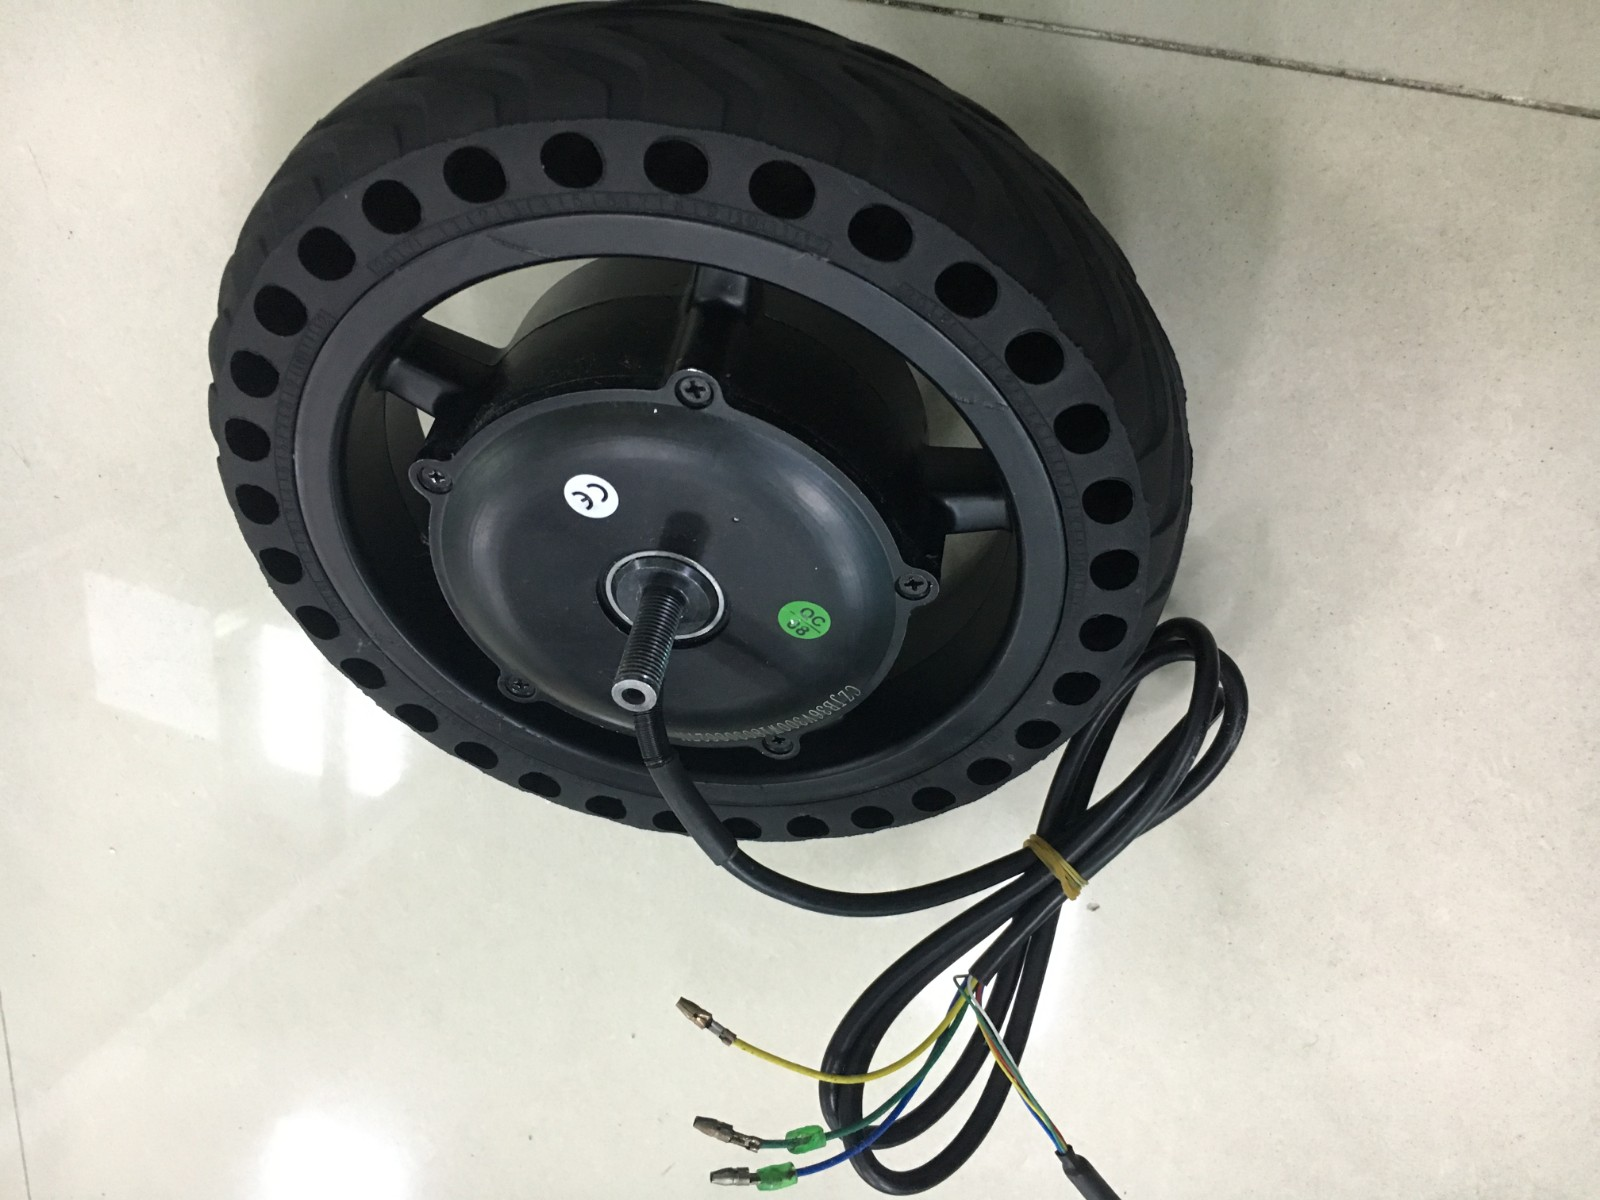 CZJB-90-10-Q  10 inch front drive electric scooter motor